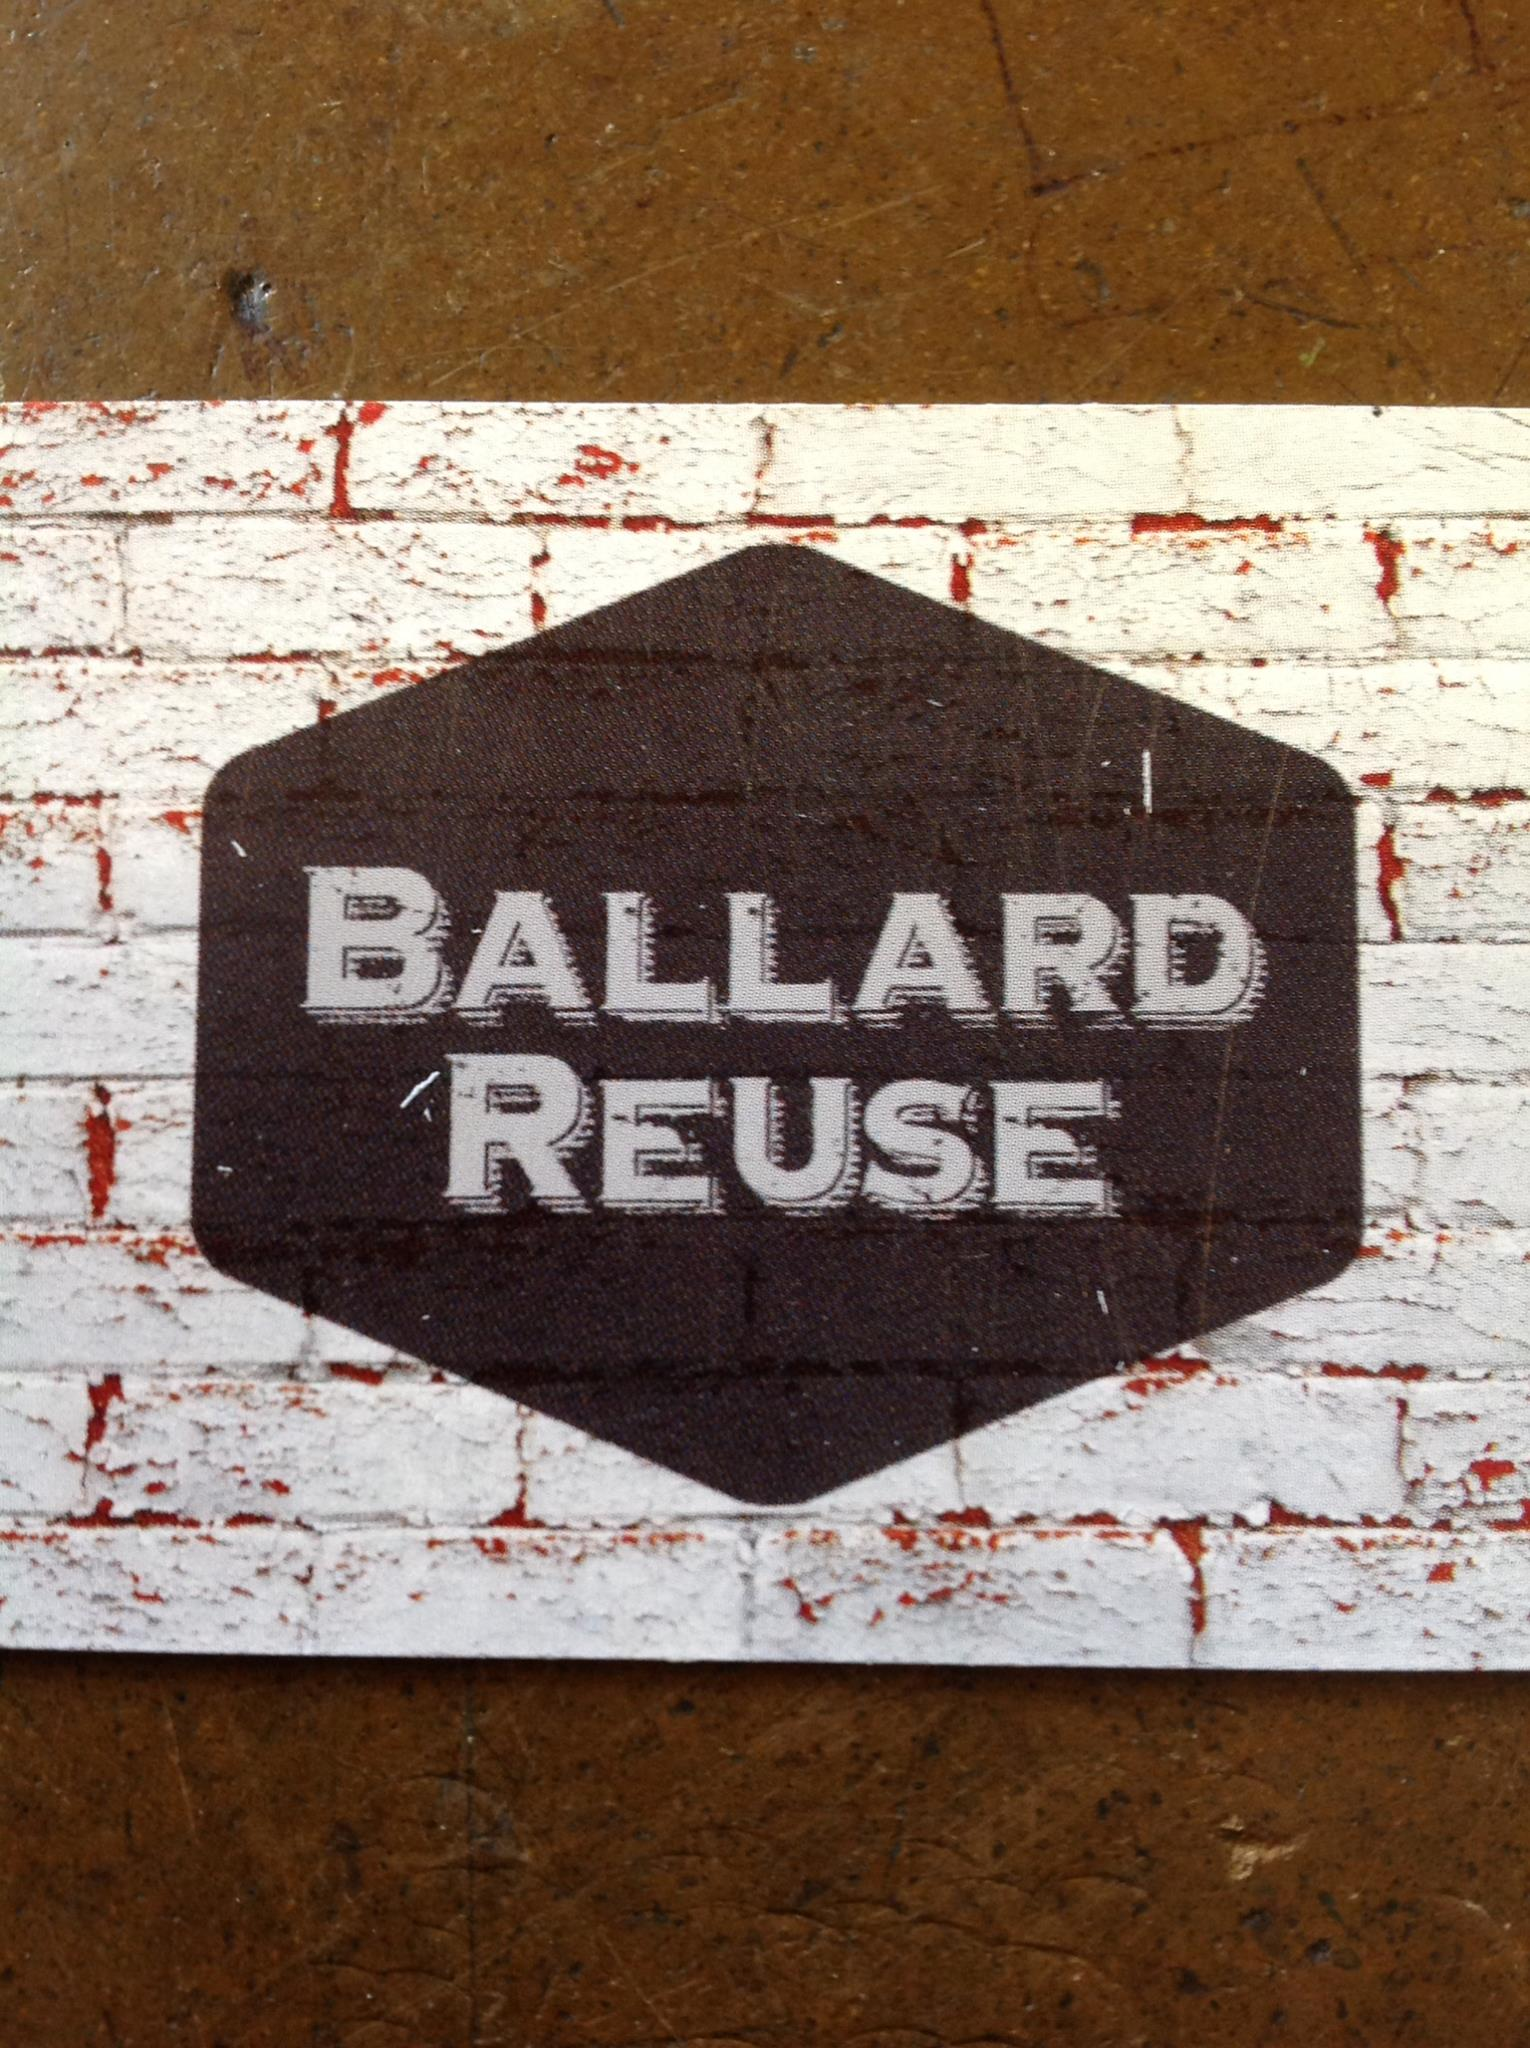 my ballard ballard reuse 3rd anniversary sale on saturday ballard reuse is about to celebrate its 3rd anniversary and to celebrate they re selling everything for 20 percent off the anniversary party is from 11